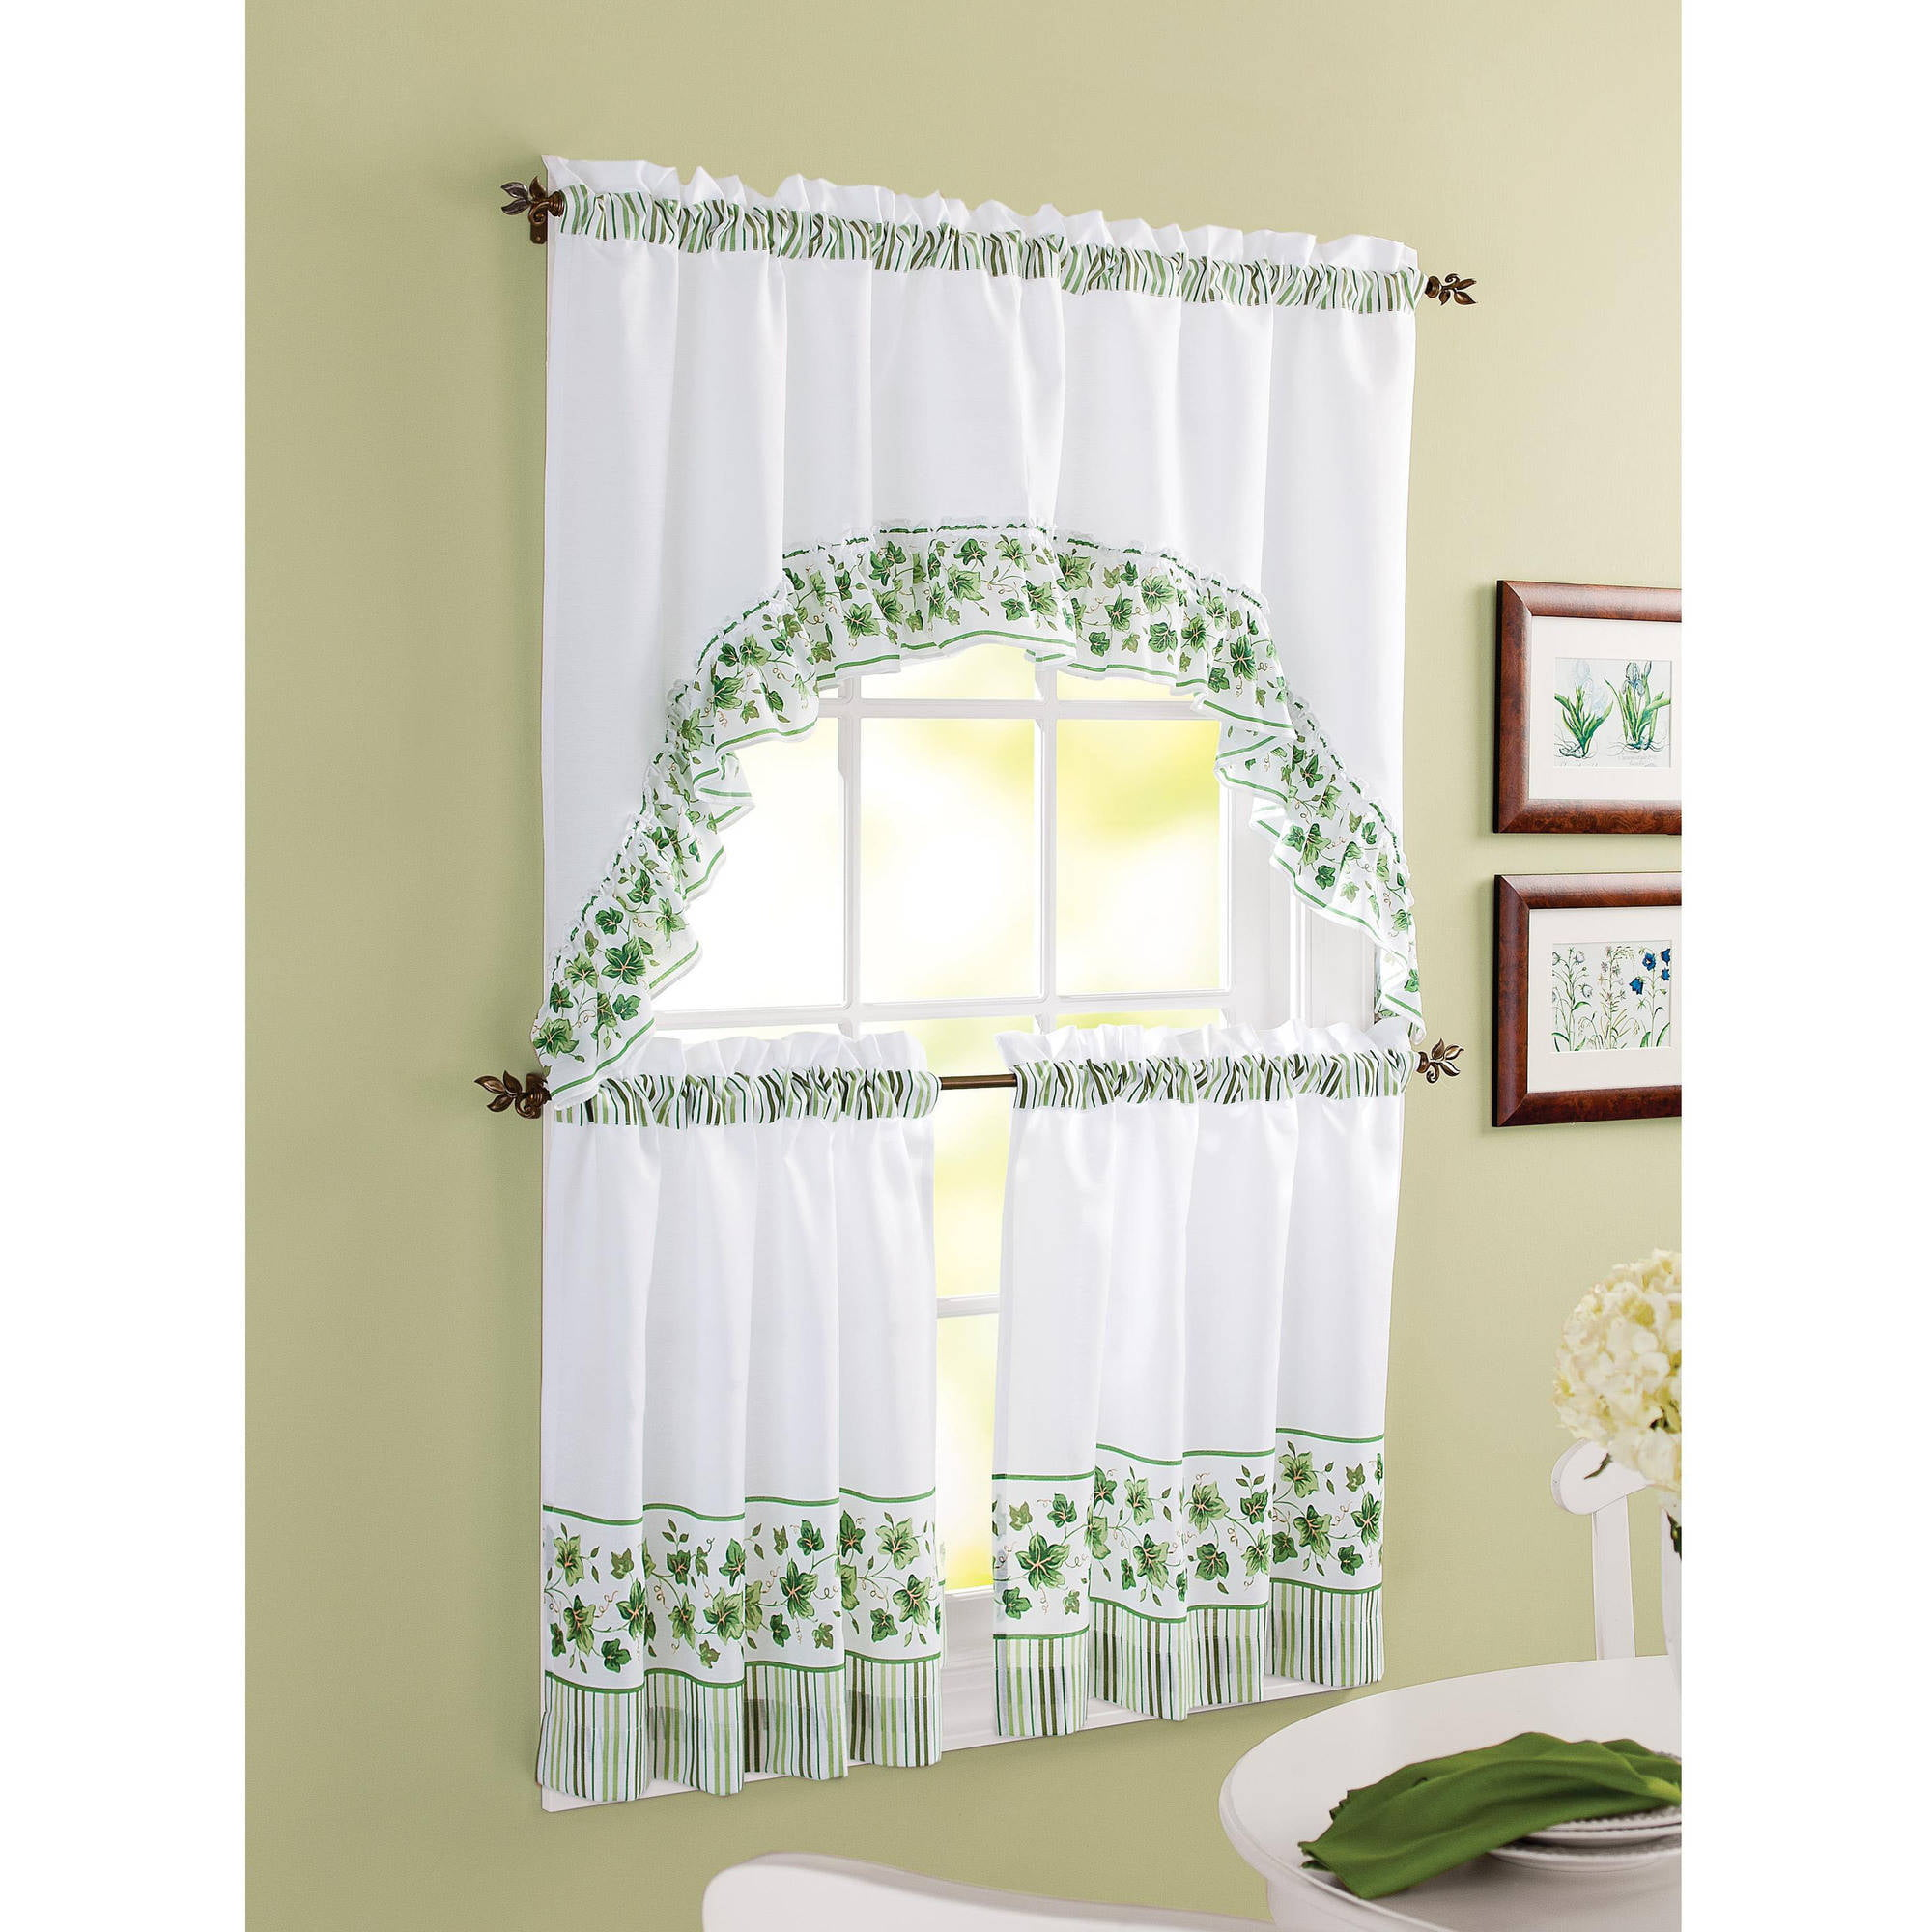 Better Homes and Gardens Ivy Kitchen Curtain Set Walmart